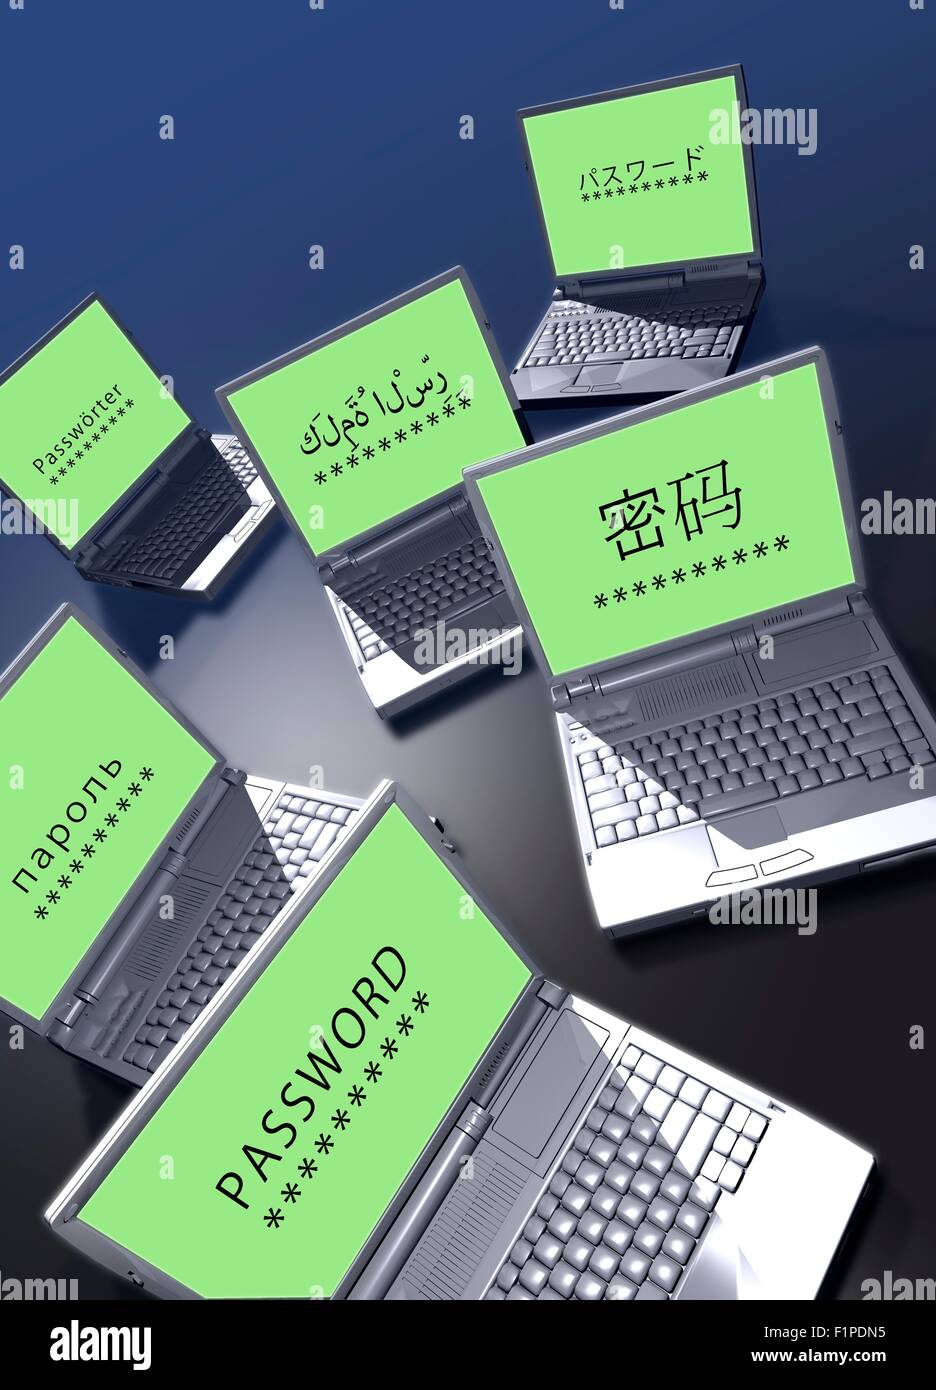 Passwords in different languages on laptop screens. - Stock Image